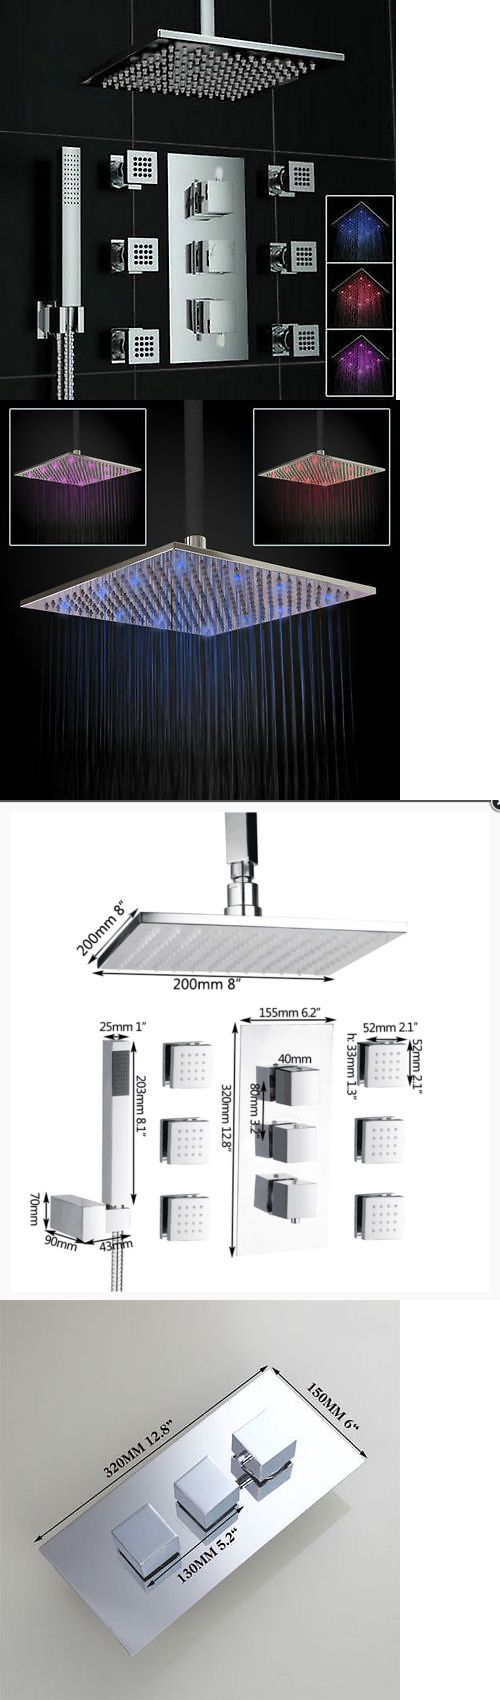 Massagers: Us Polish Relaxing Chrome Bathroom Shower Panel Set Rainfall Valve Mixer Tap BUY IT NOW ONLY: $155.99